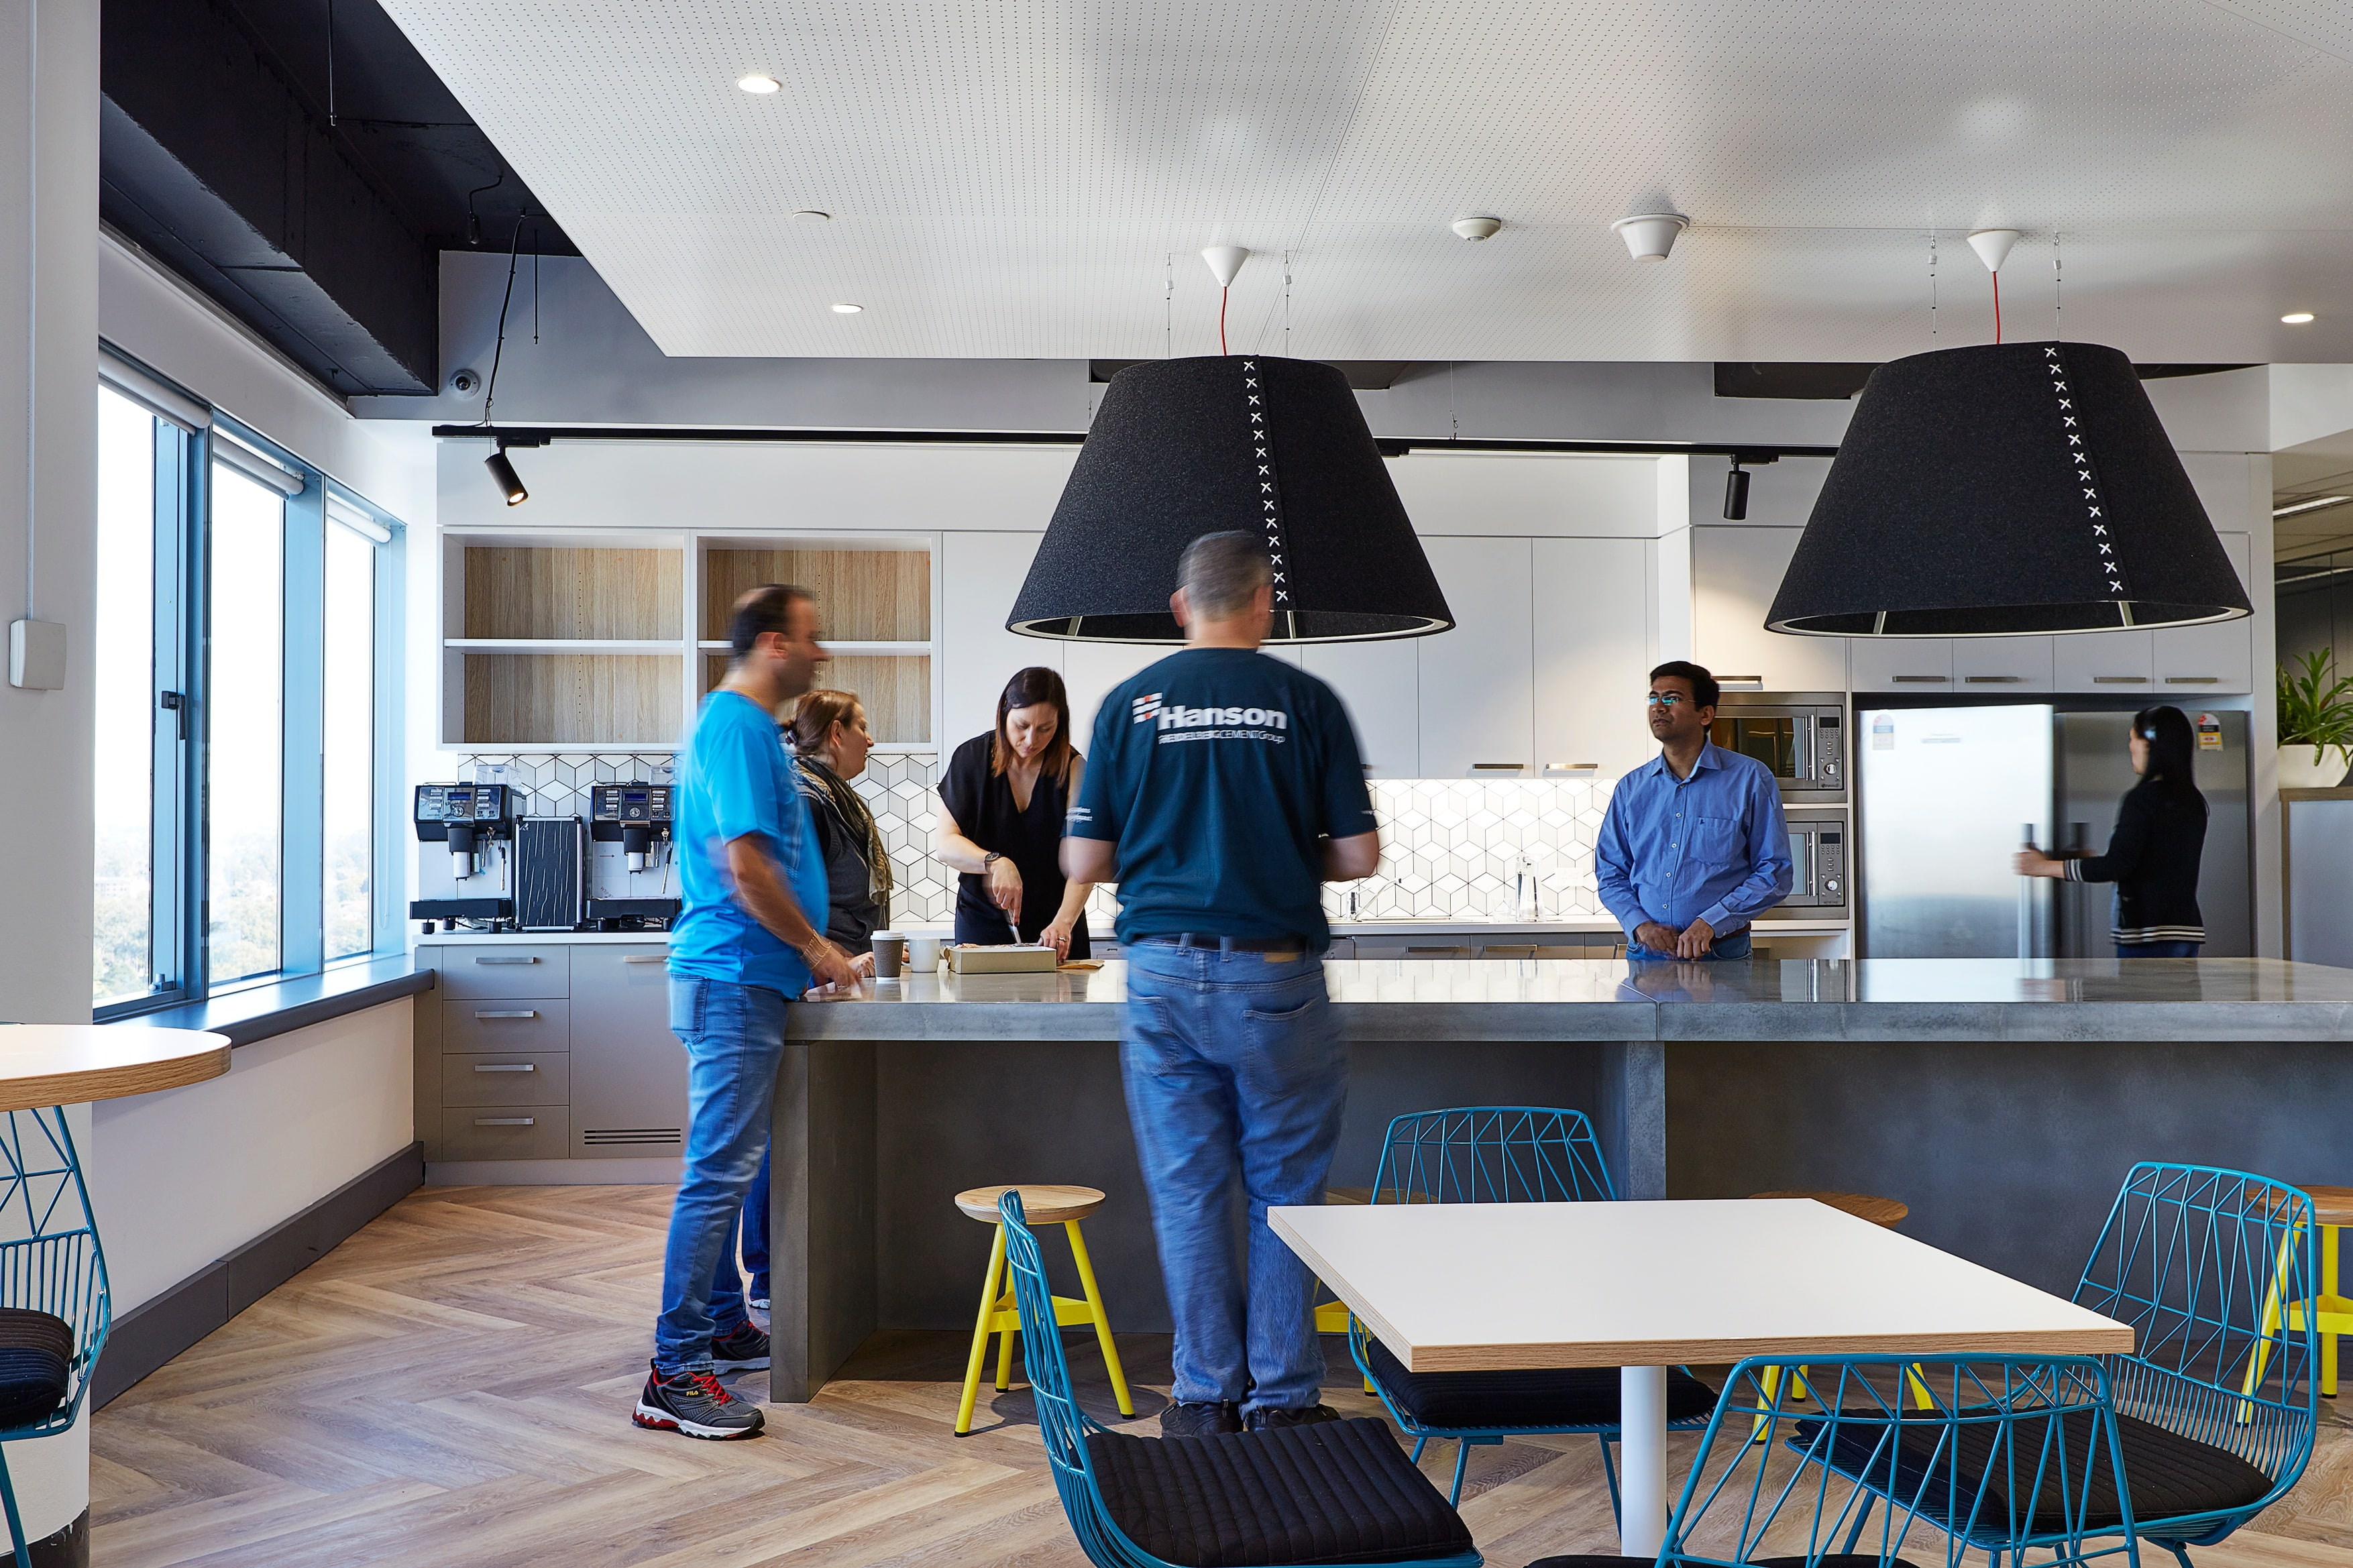 Hanson Parramatta Fitout Tenant Representation, Interior Design, Project & Construction Management Project Image 8 by PCG